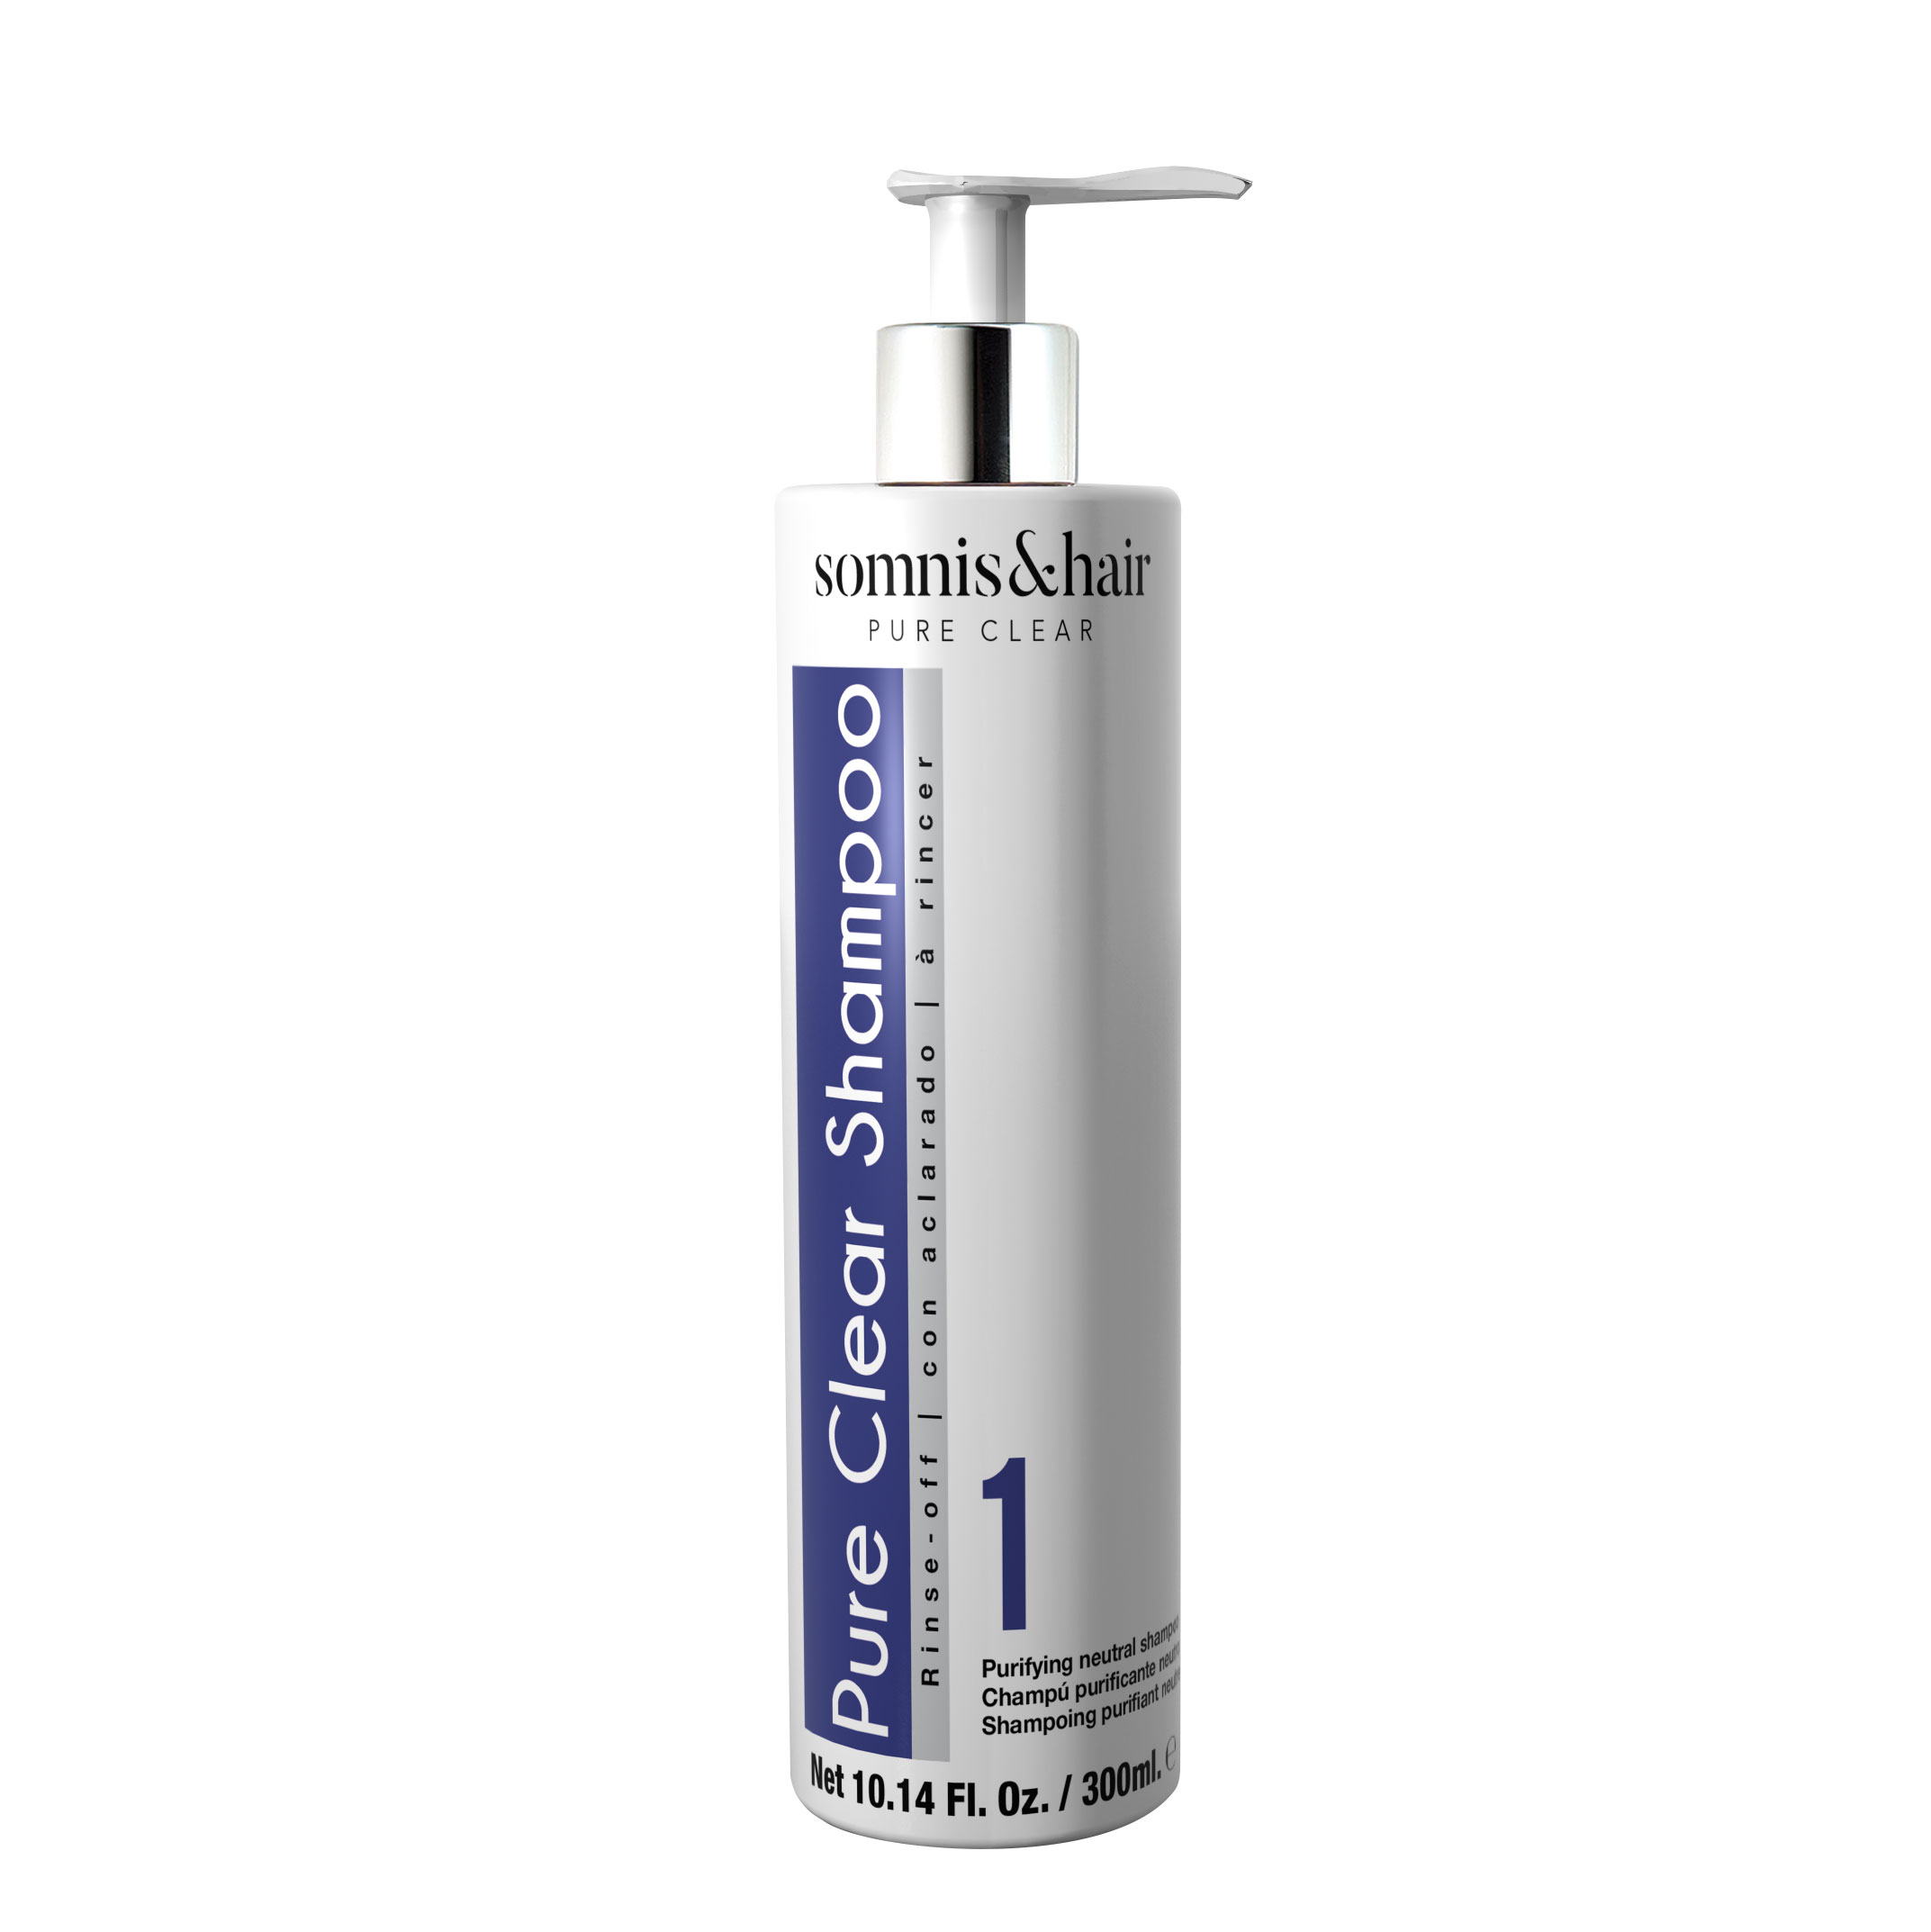 Pure Clear. SOMNIS&HAIR for UNISEX, 300ml